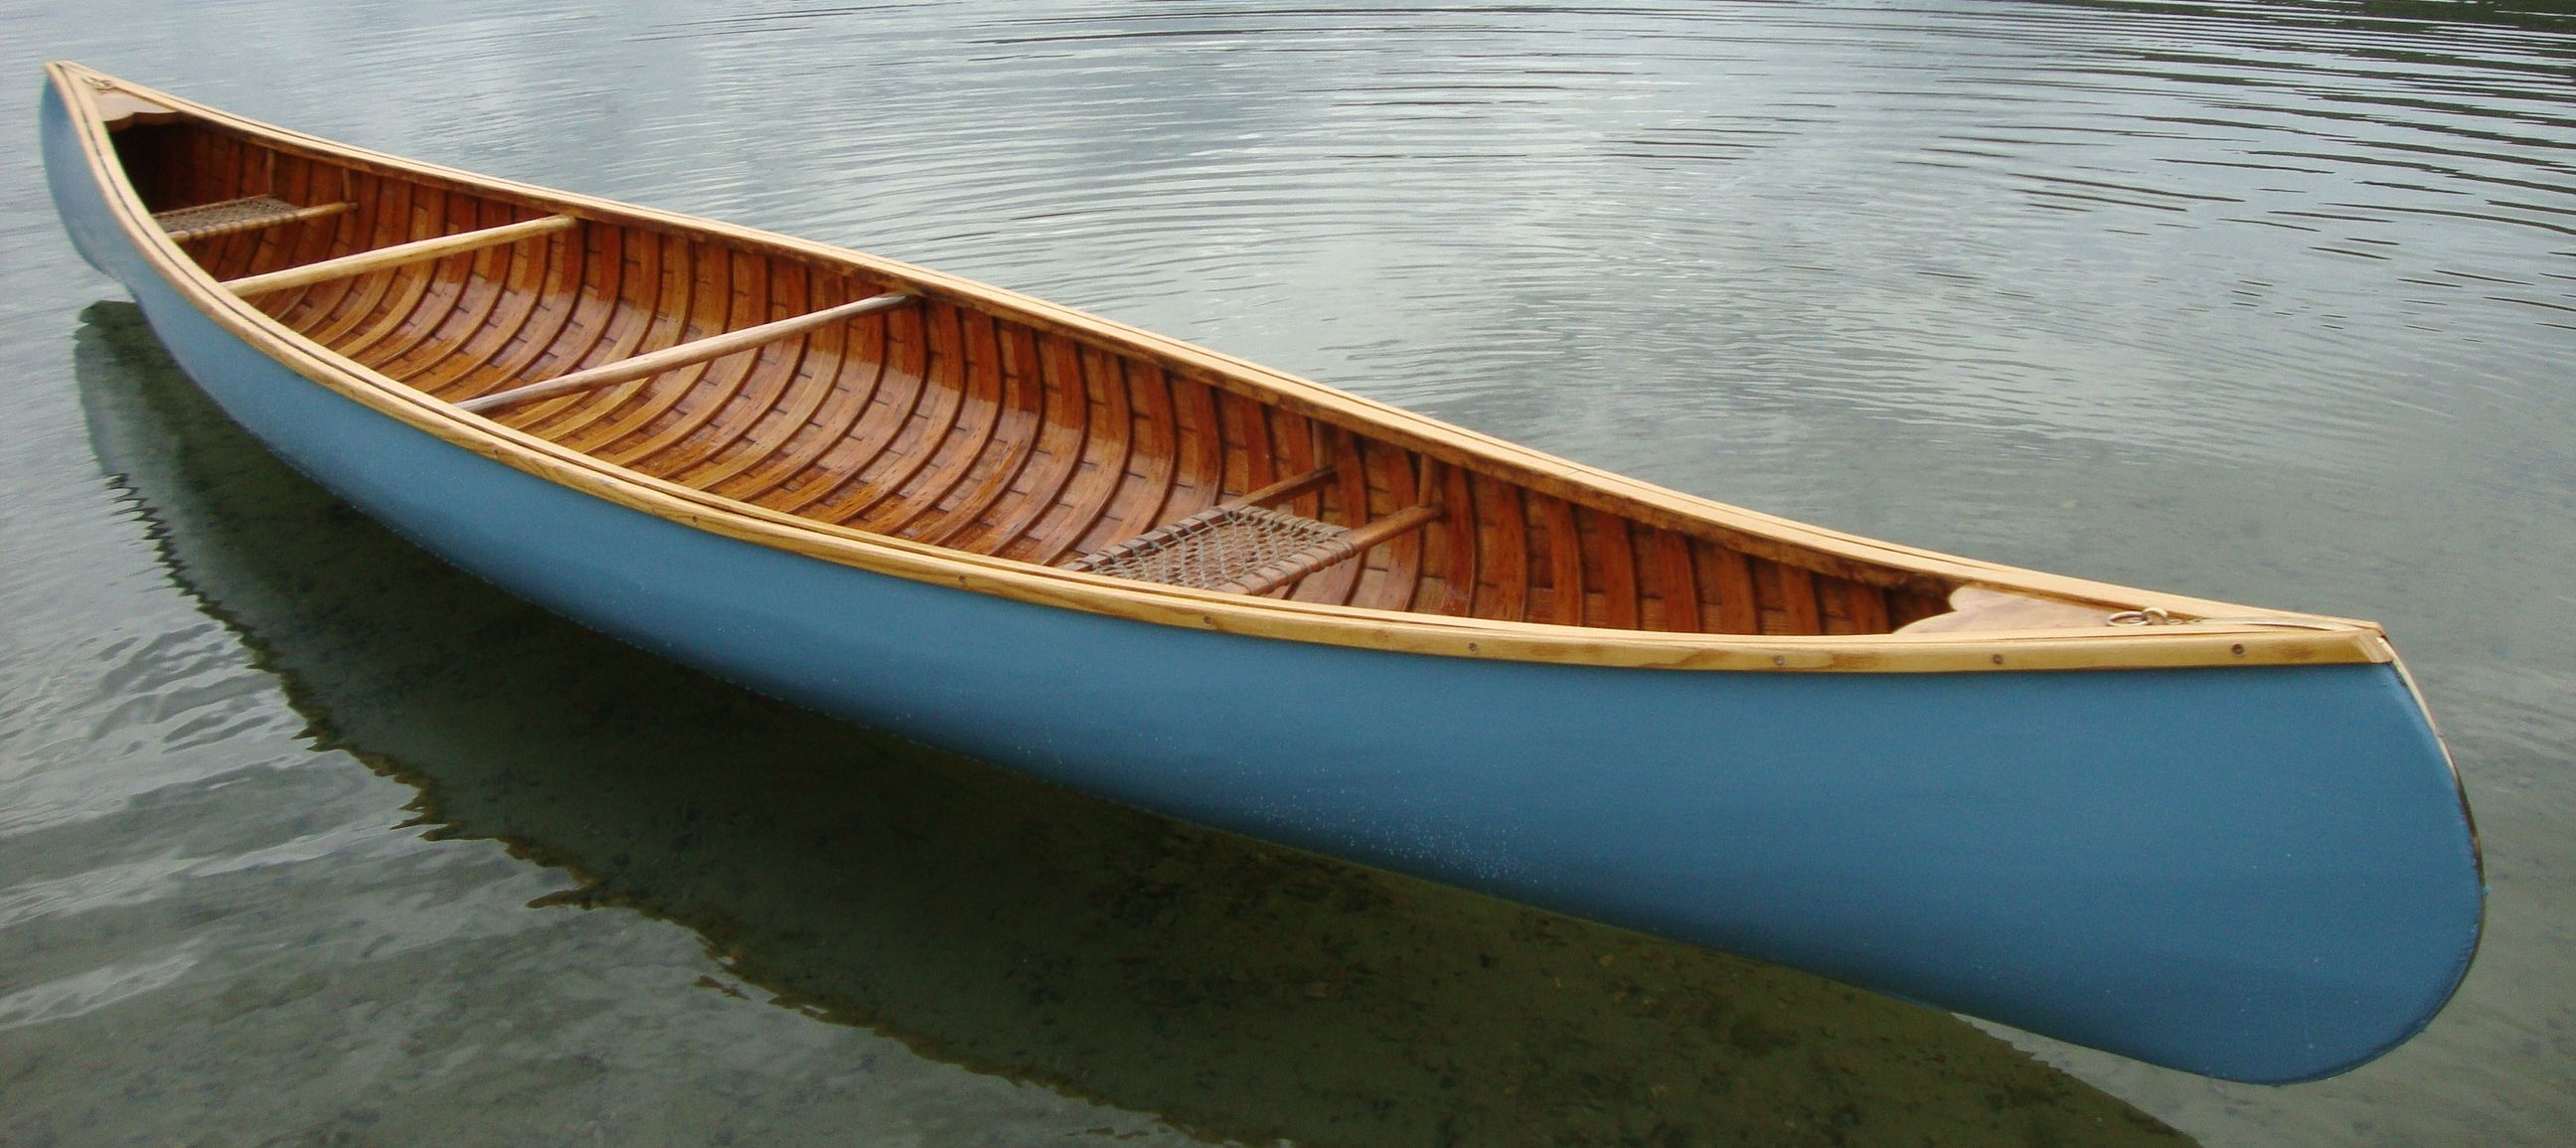 The Huron Canoe A Restorers Guide To This Wonderful Wood